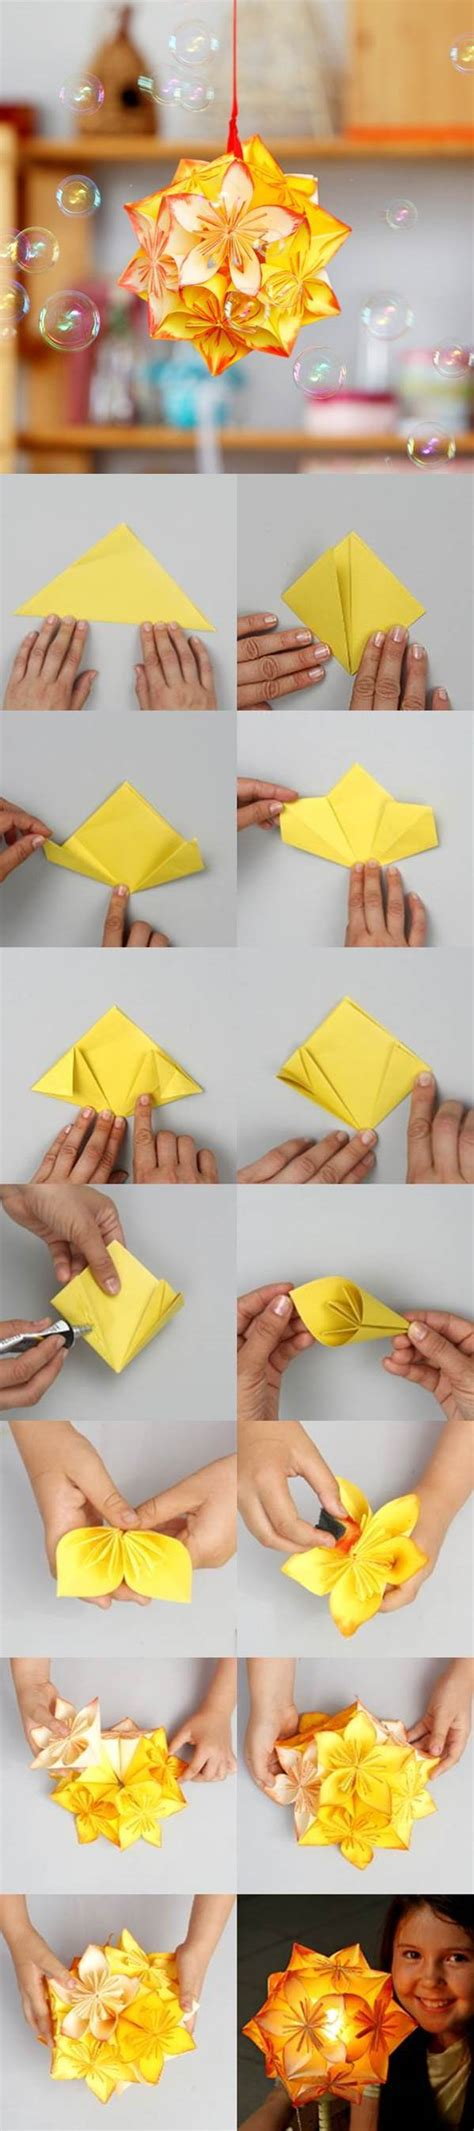 Diy Origami - diy origami kusudama decoration 2